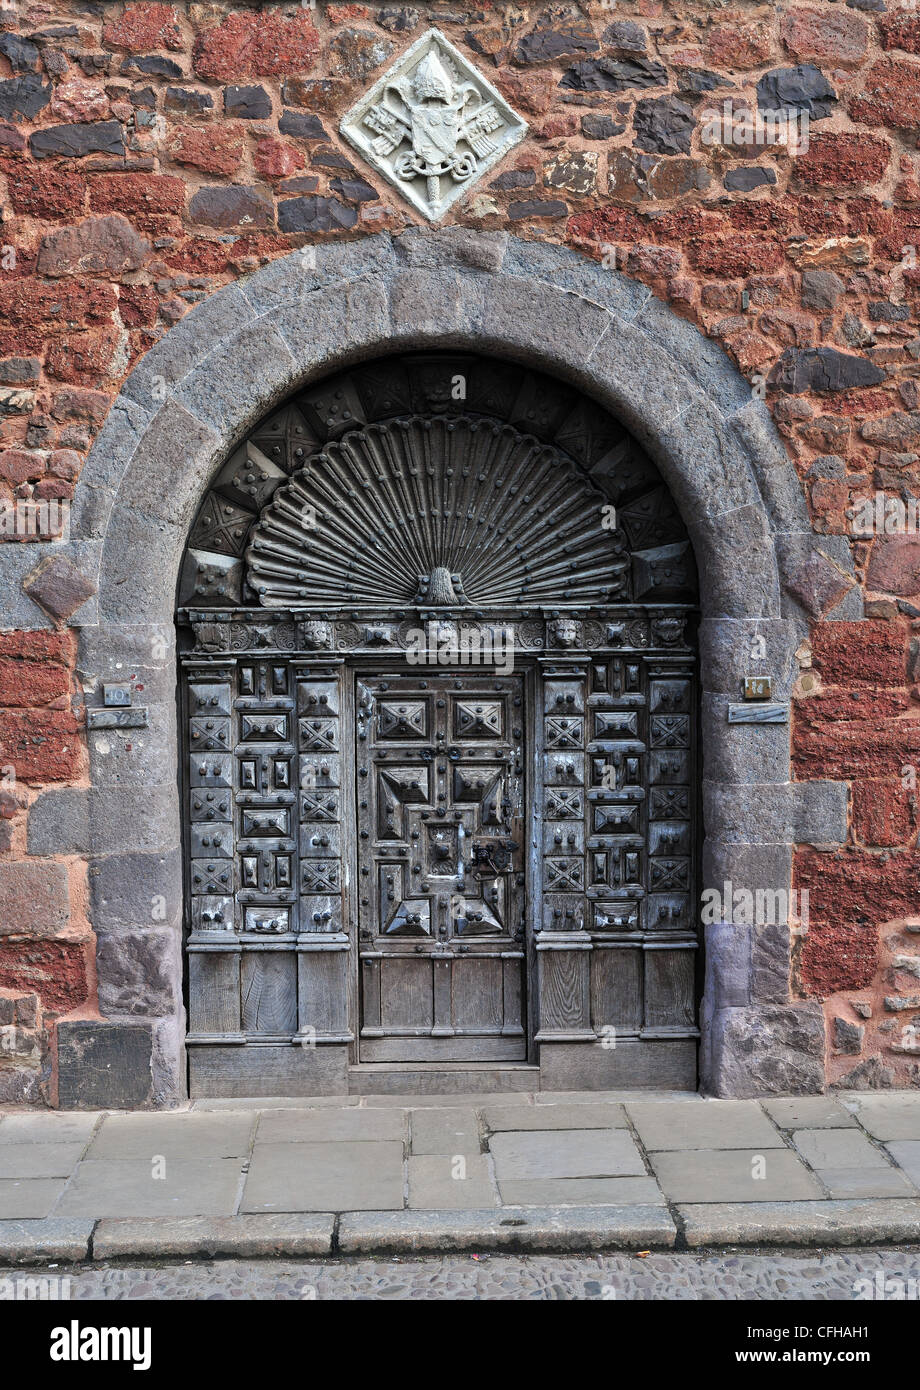 Ancient wooden door in a wall of Old Red Sandstone. Part of the Cathedral Close in Exeter, Devon, England - Stock Image